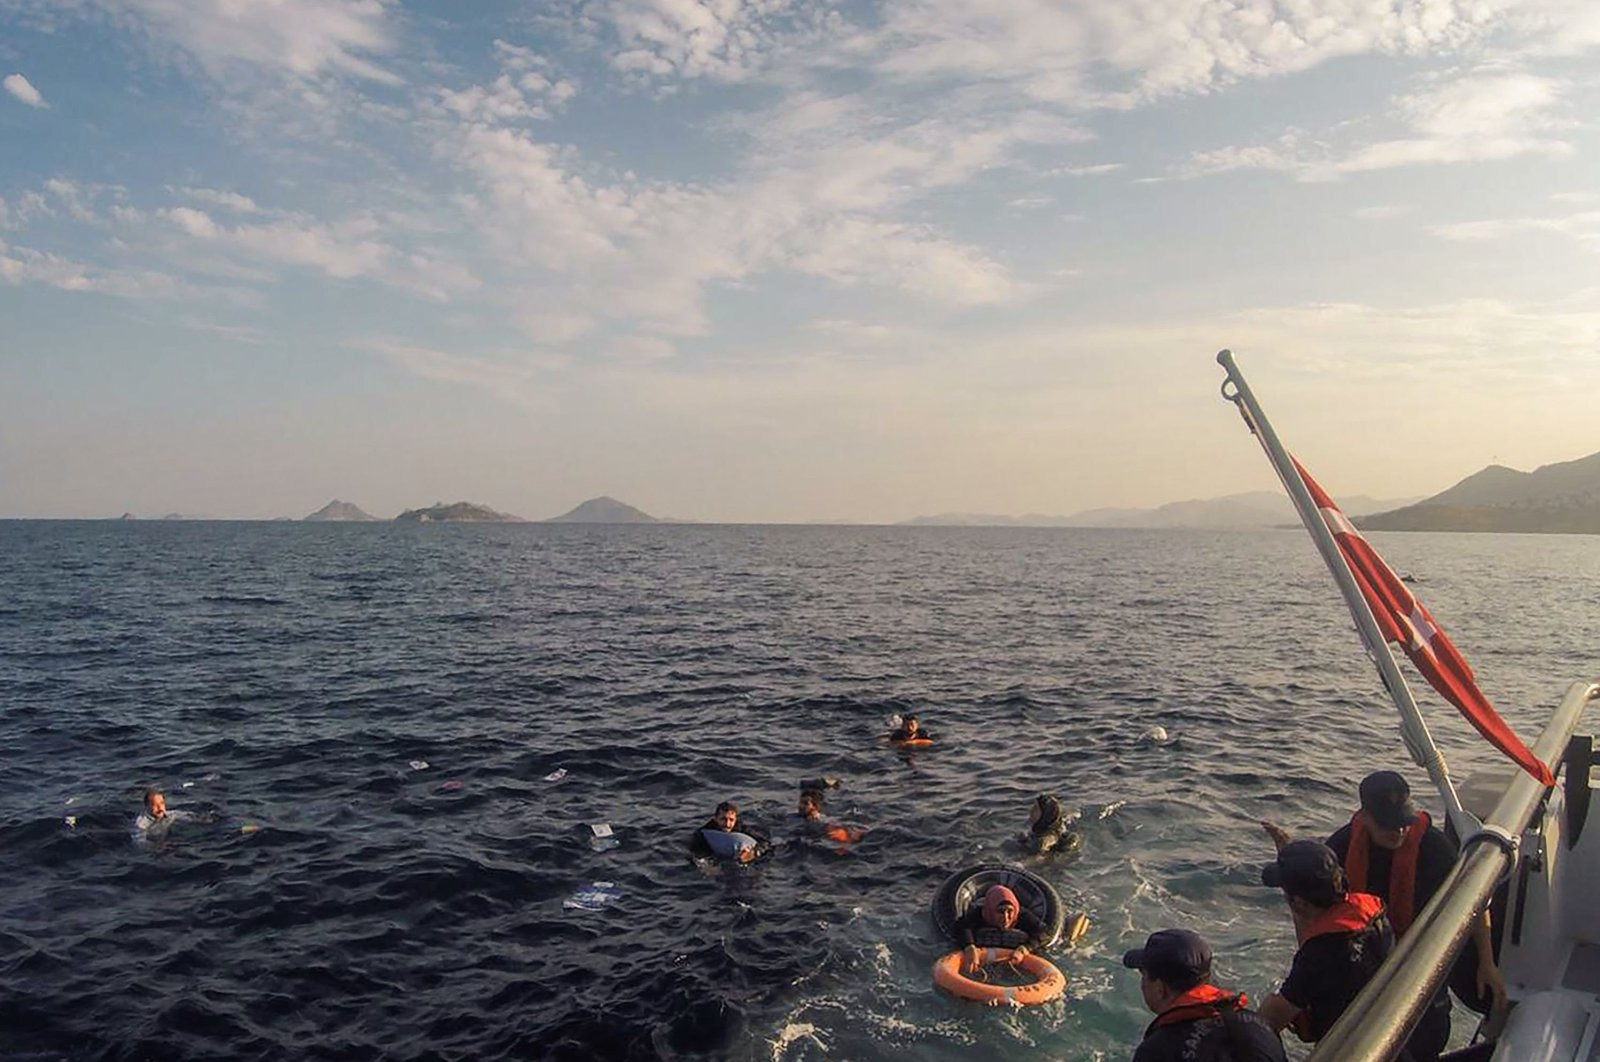 Irregular migrants are rescued by Turkish security forces after their boat sank in the Aegean sea, off the coast of southwestern Turkey, June 17, 2019. (AFP Photo)